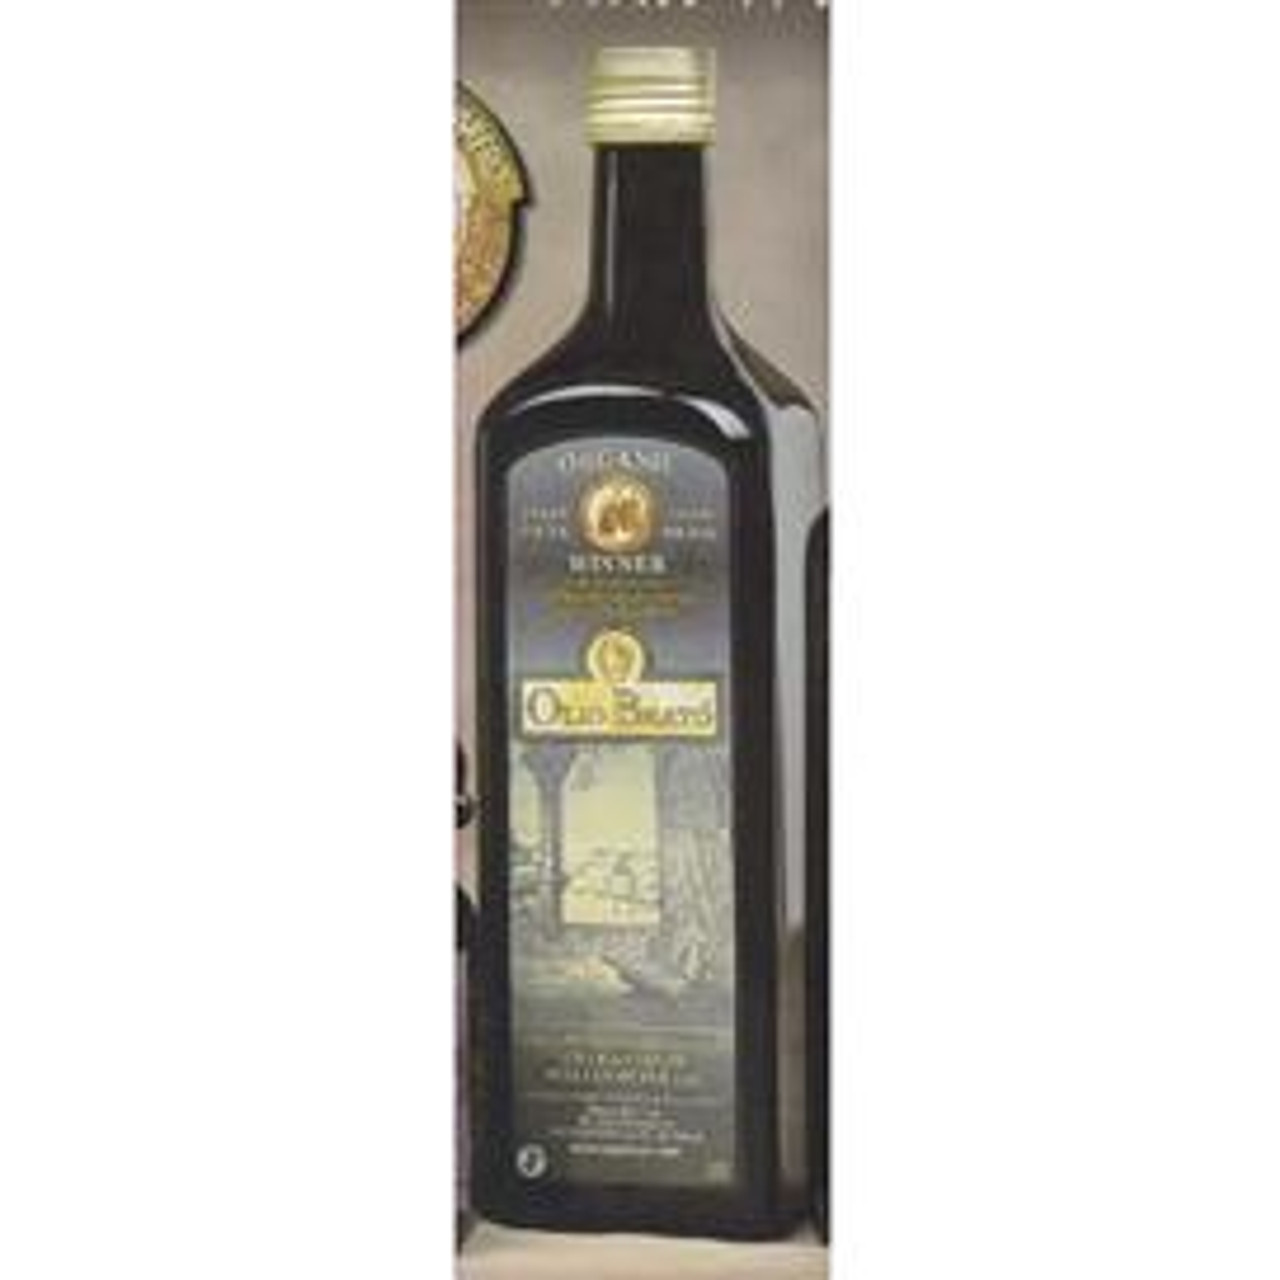 Olio Beato Extra Virgin Olive Oil